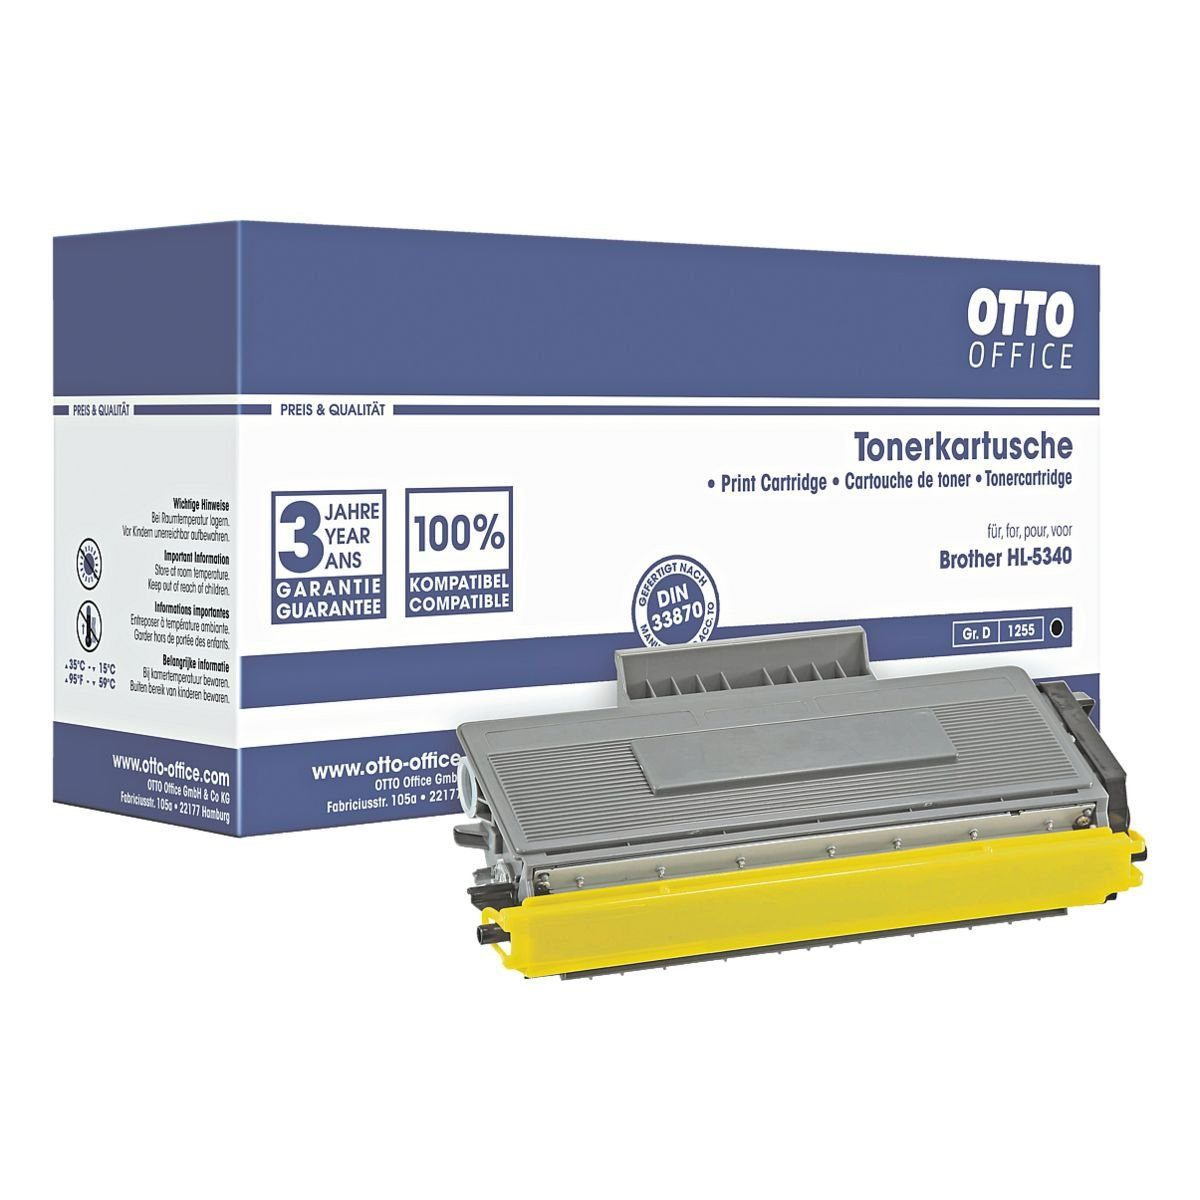 OTTO Office Standard Toner ersetzt Brother »TN-3230«